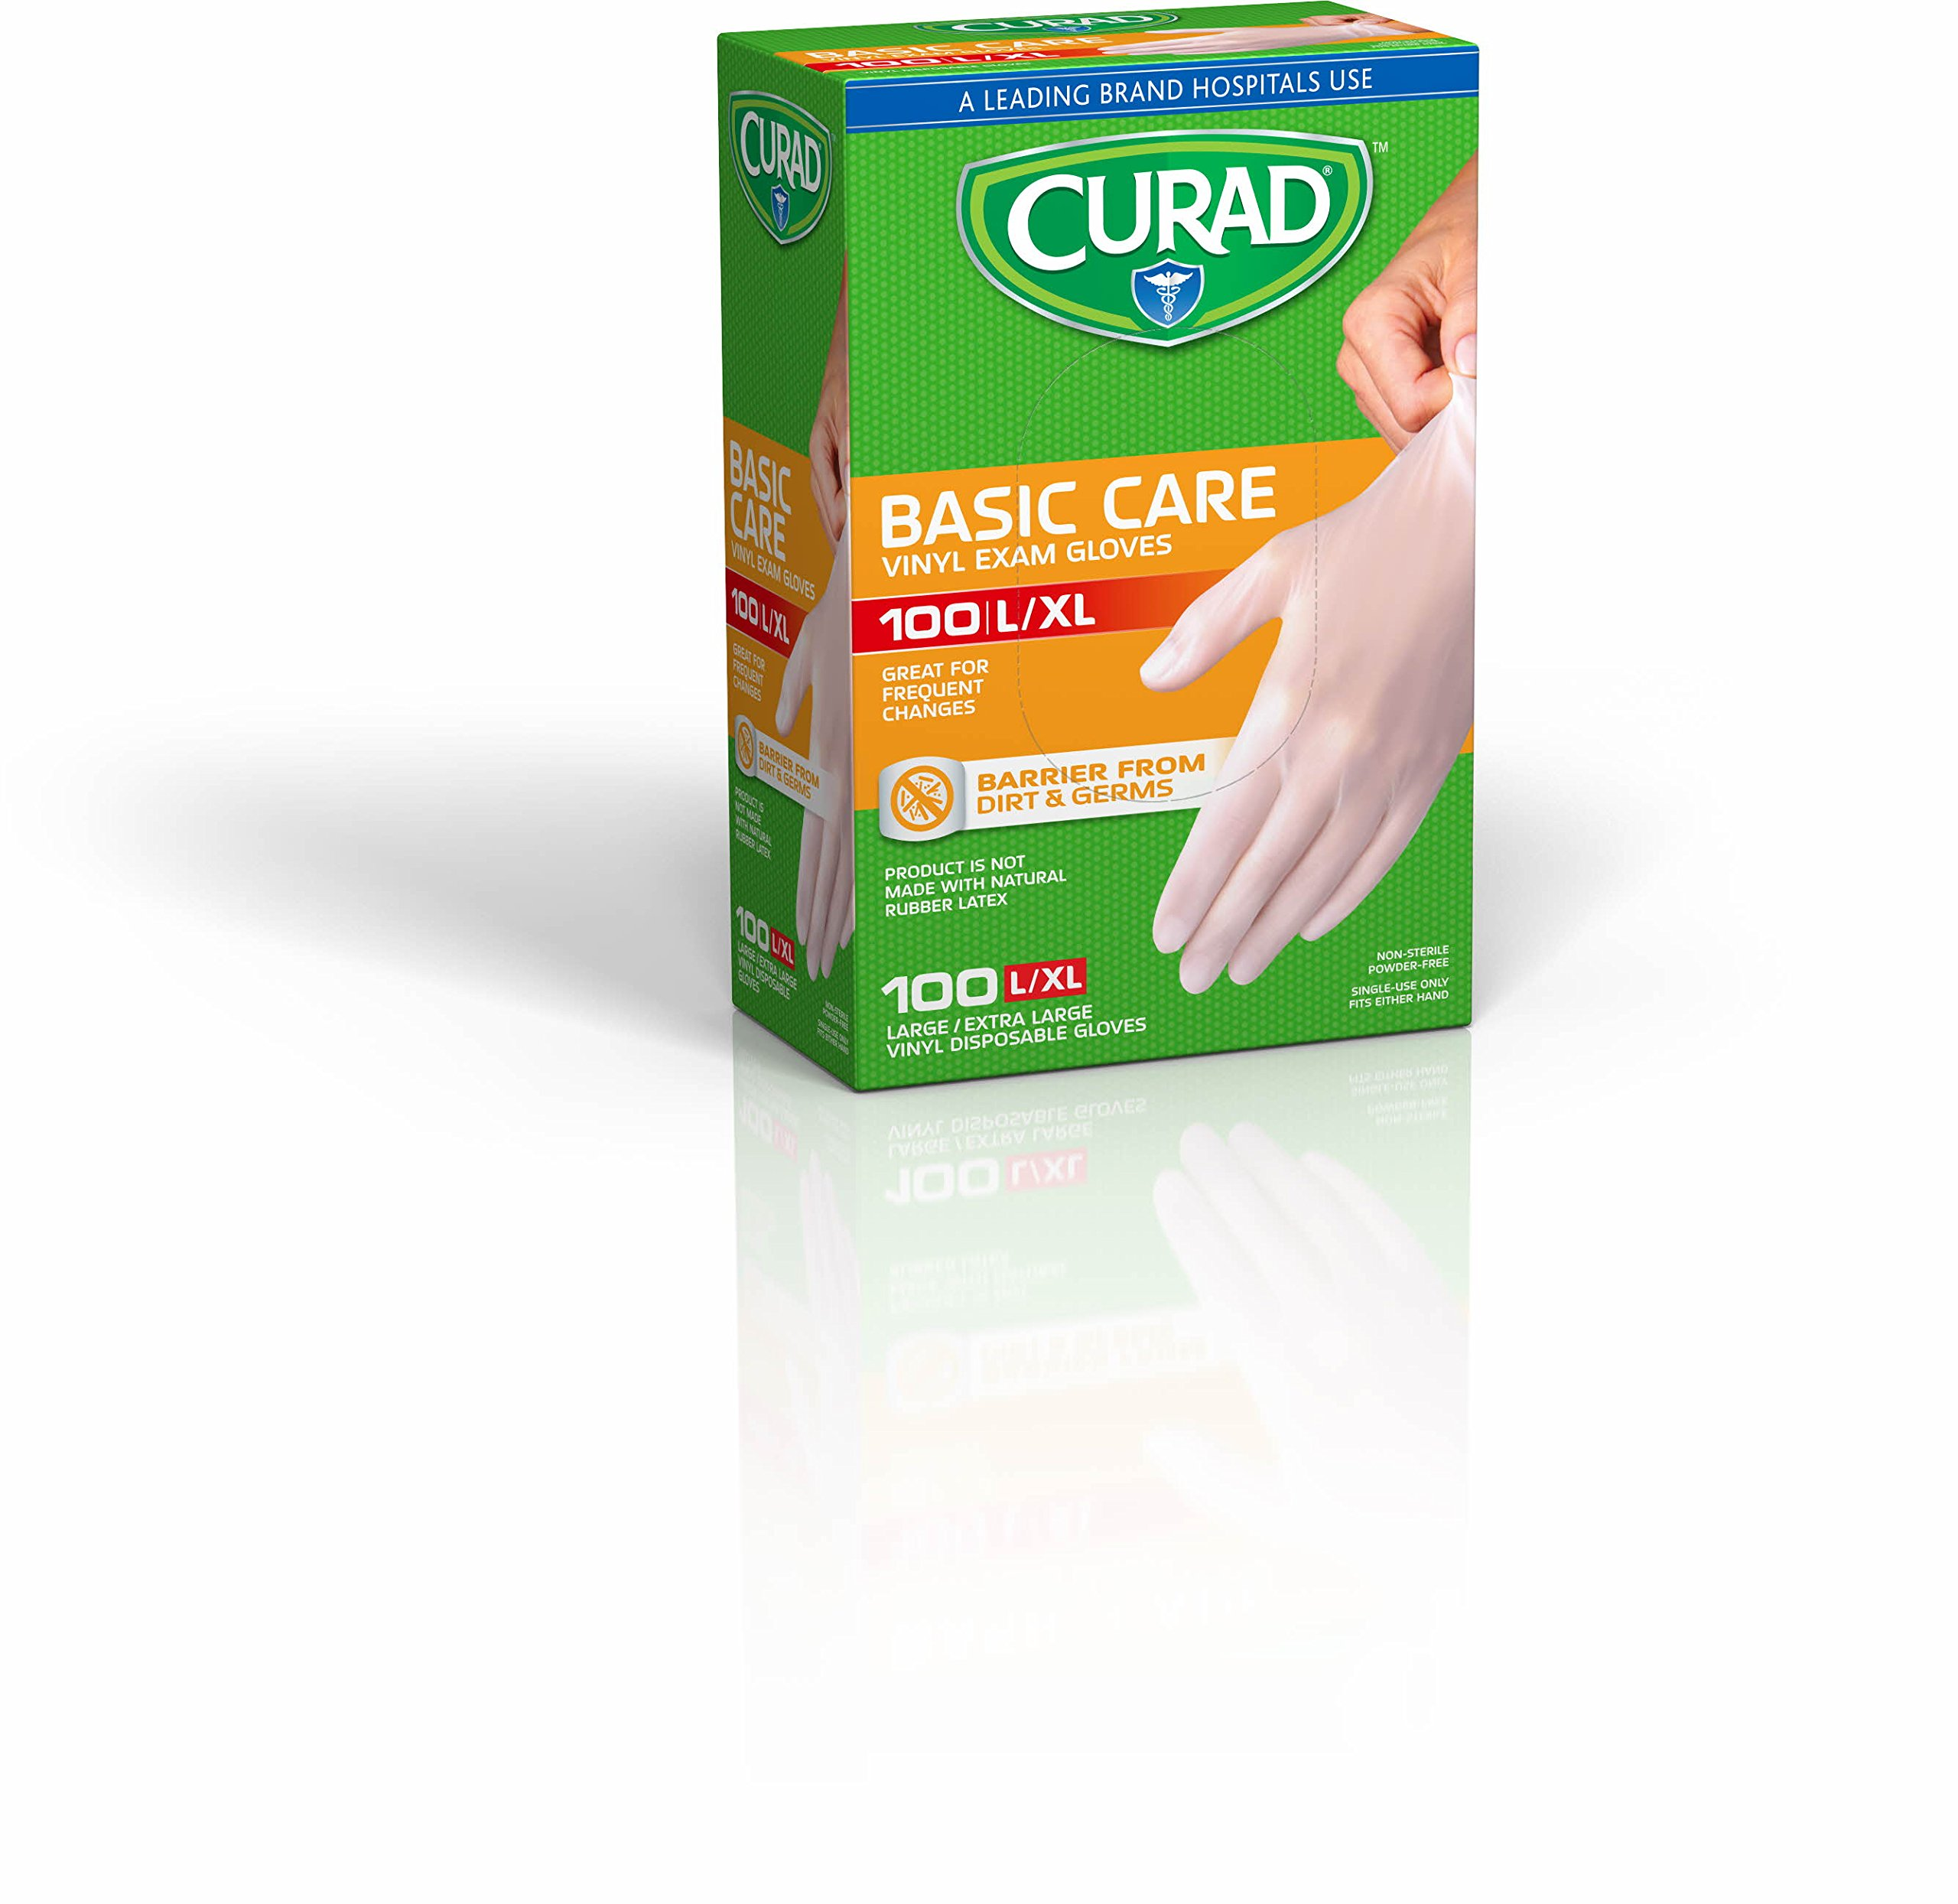 Curad CUR4136W Basic Care Vinyl Exam Gloves, Large/X-Large, 100 Count